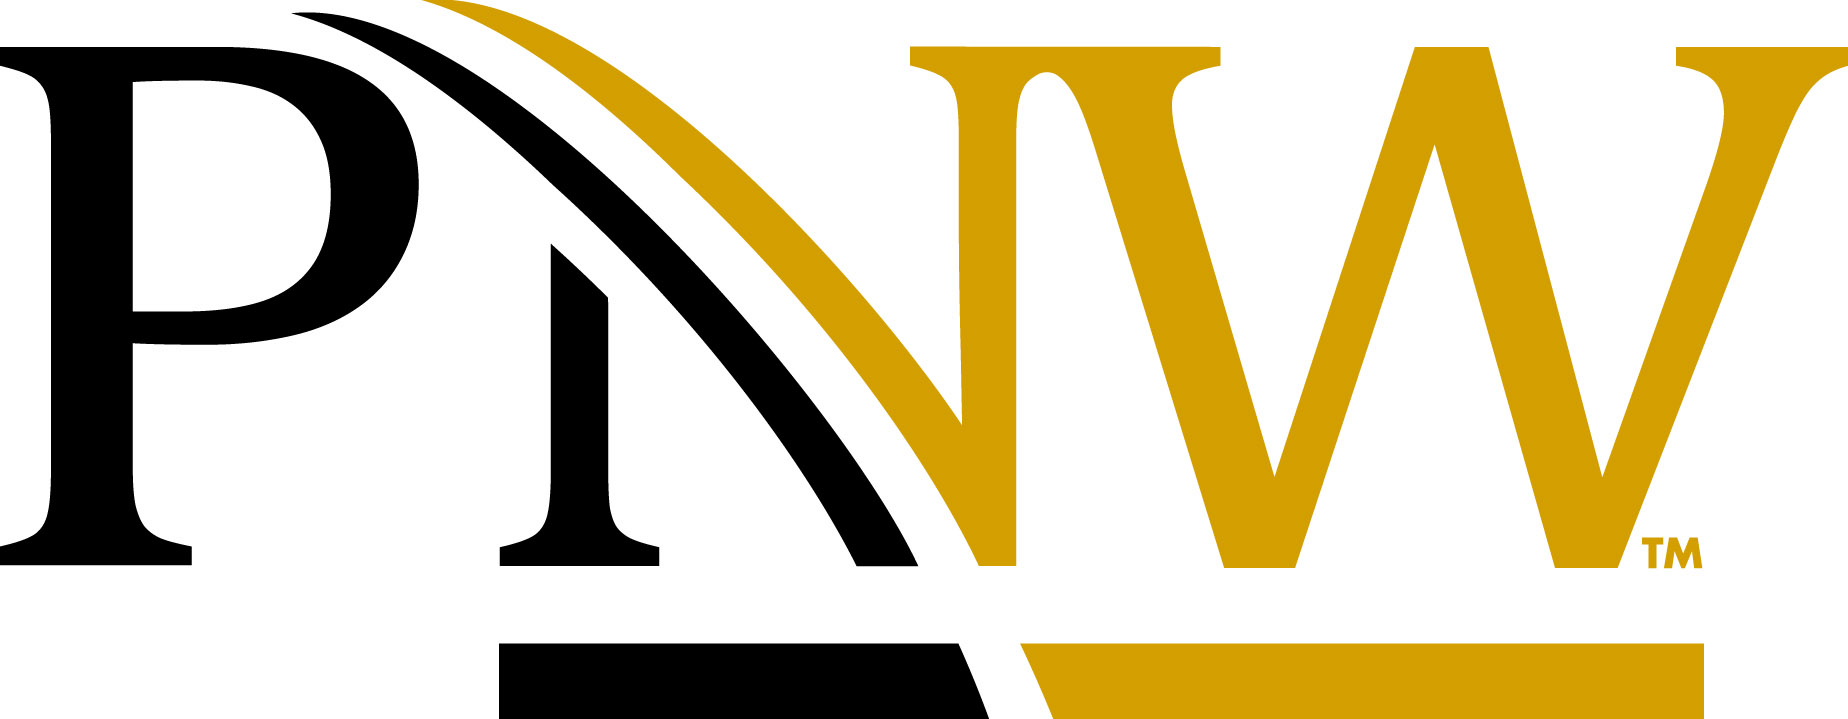 PNW Brand Standards and Logos.